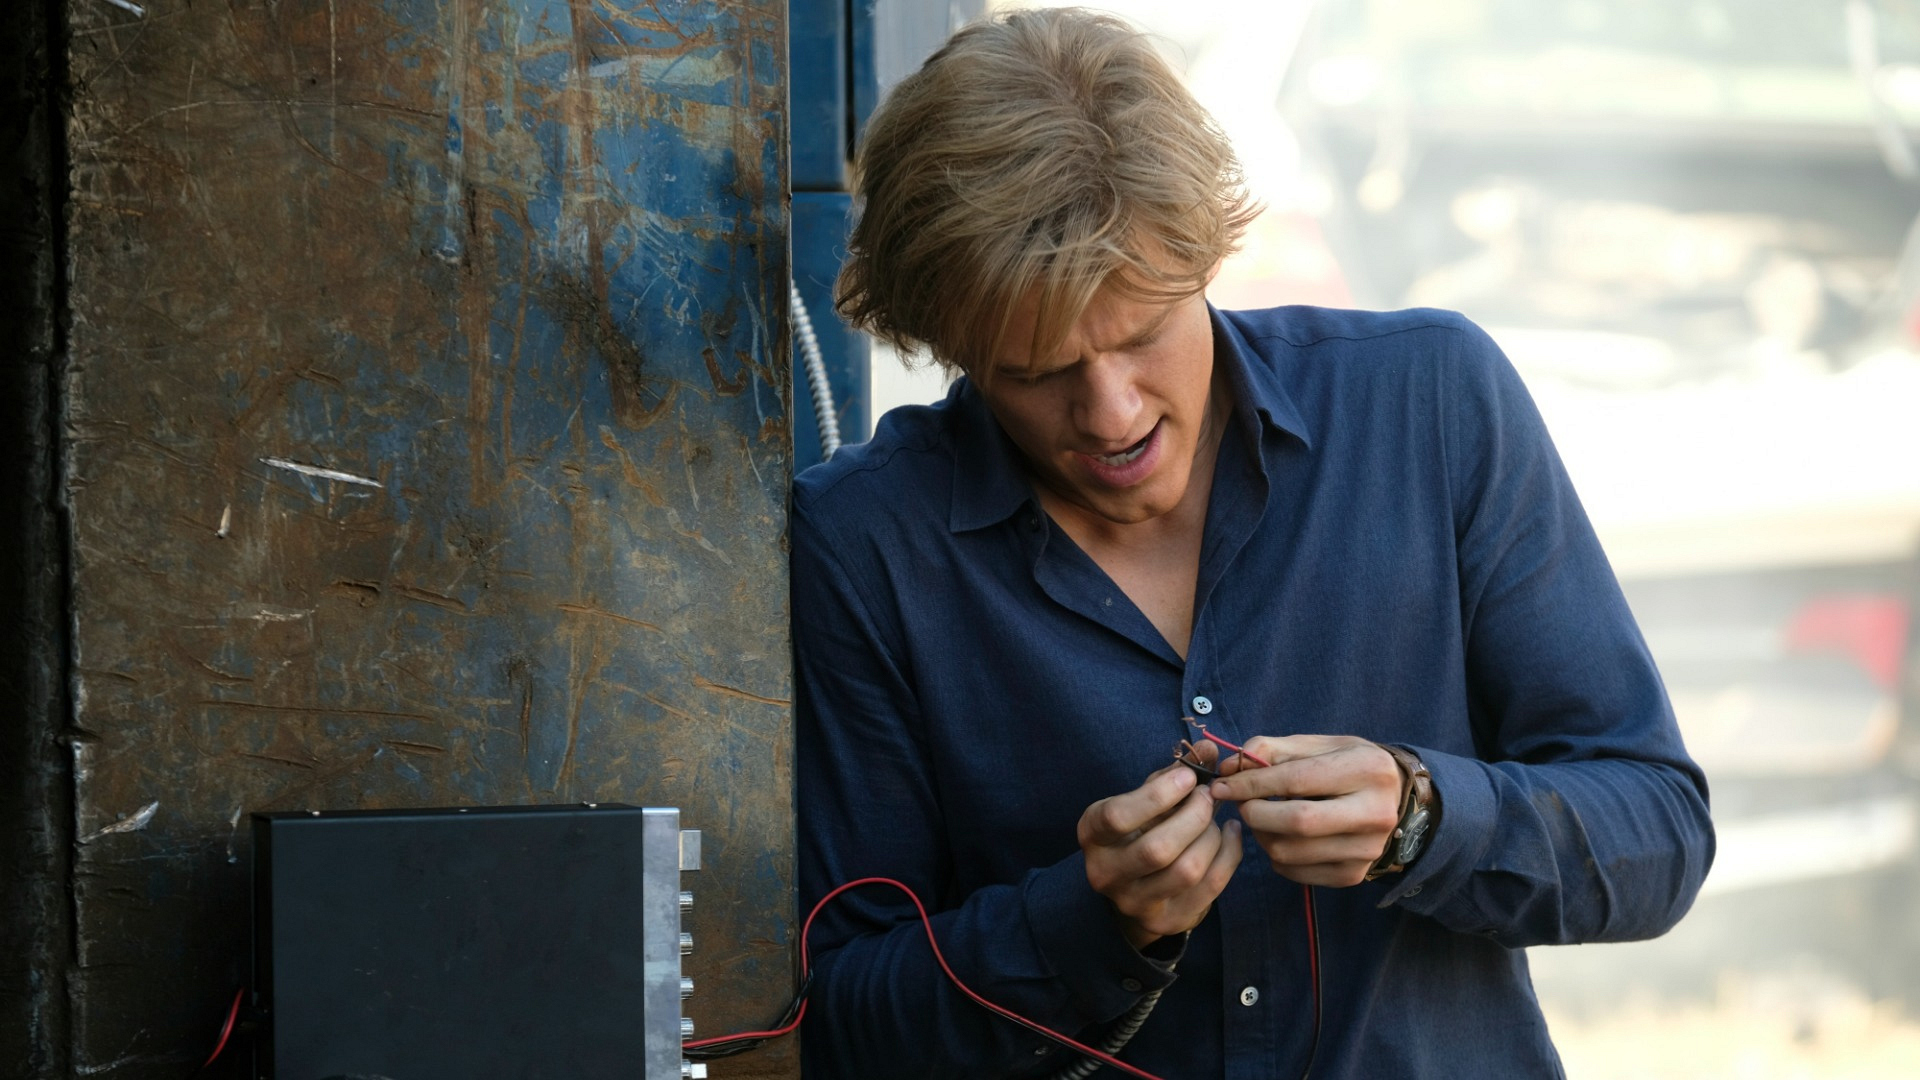 MacGyver's quick thinking is put to the test.